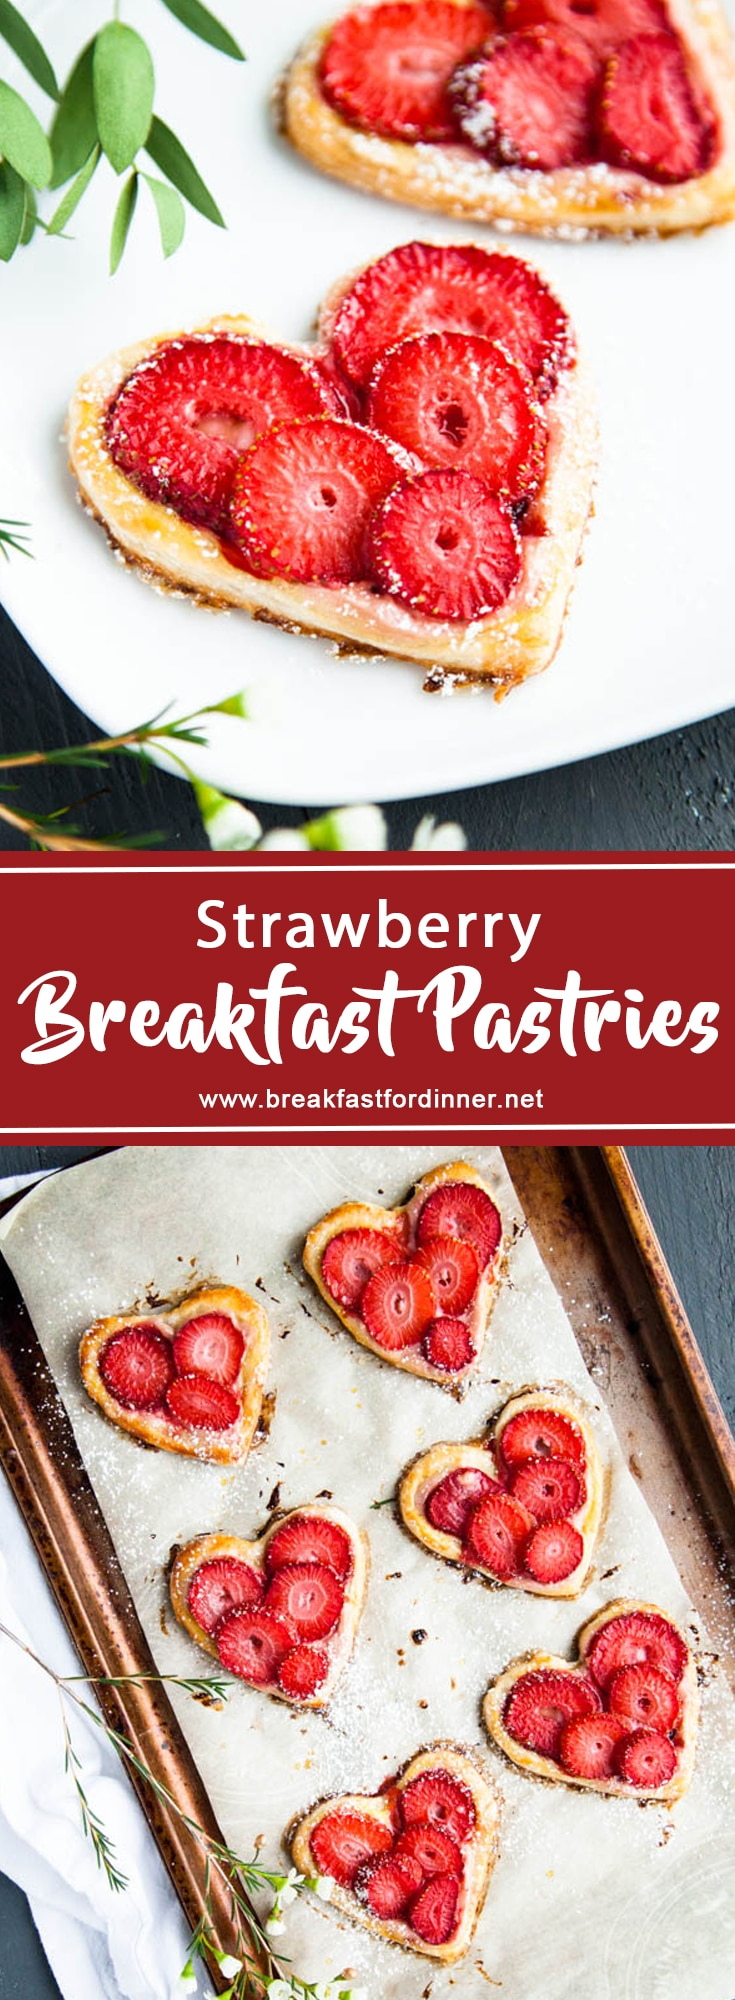 Puff pastry and sliced fruit make these breakfast pastries speedy to assemble!